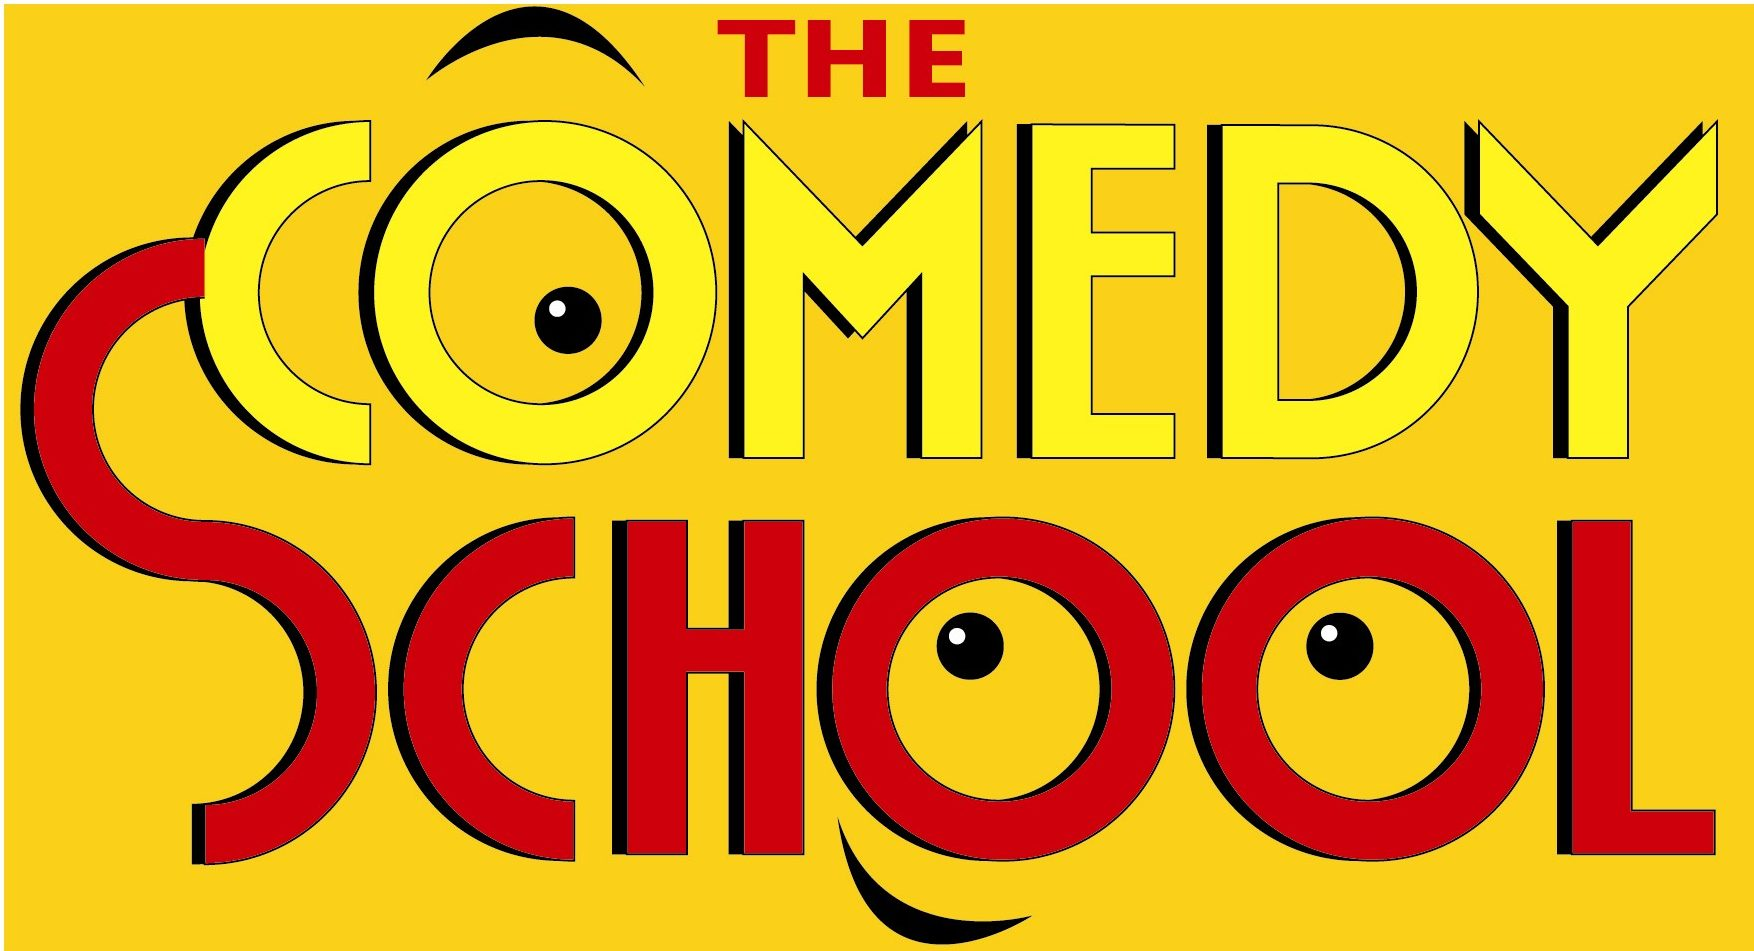 Learning through laughter – an interview with Keith Palmer, director of The Comedy School